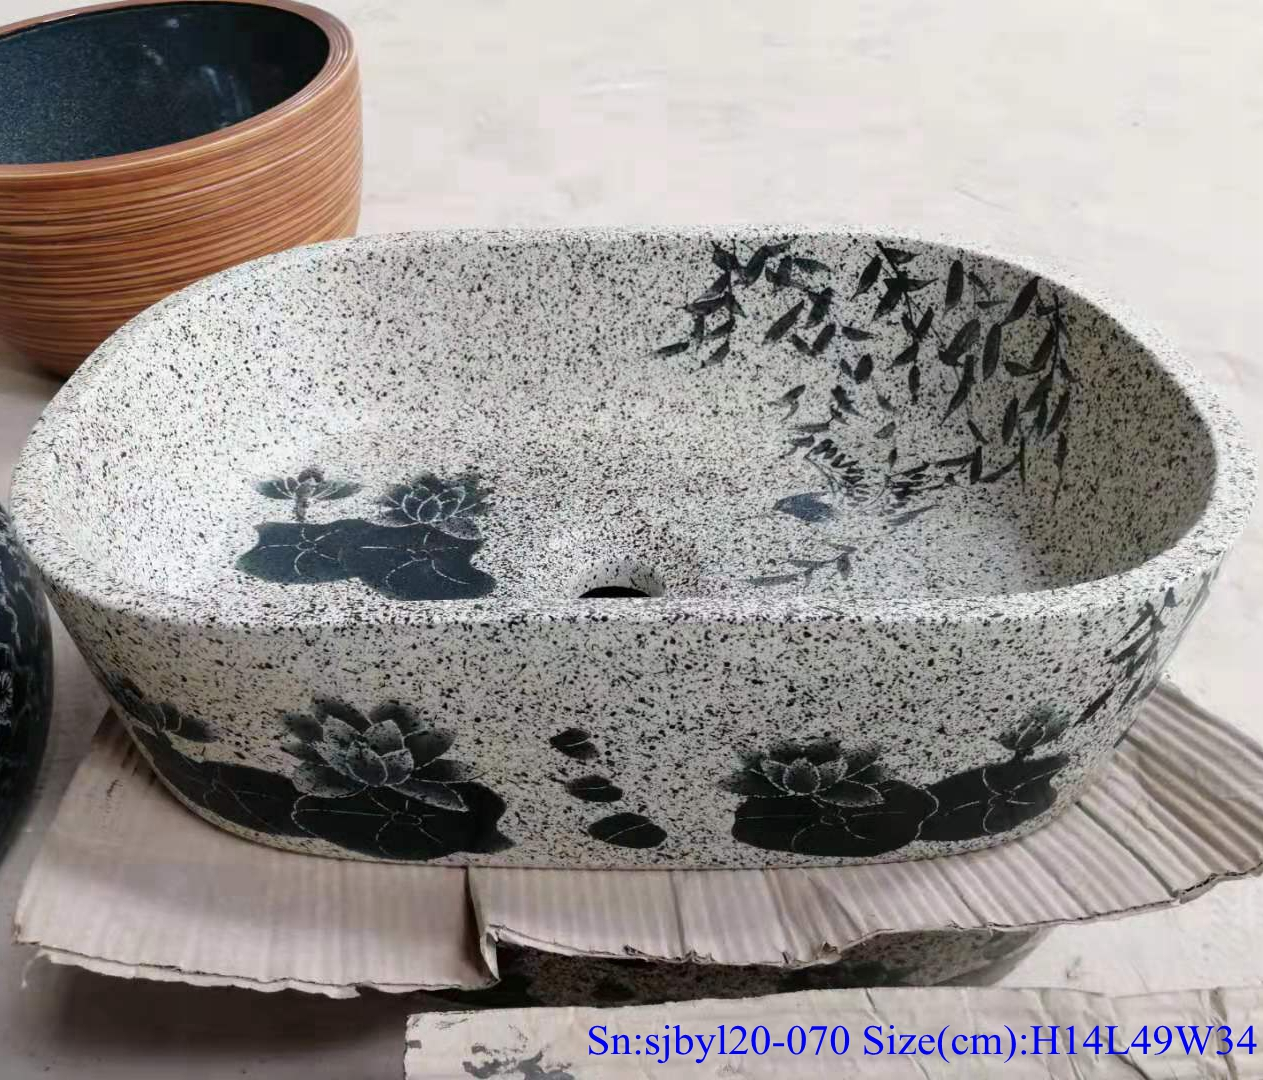 sjbyl120-070 China style antique Oval lotus leaf new Porcelain wash basin